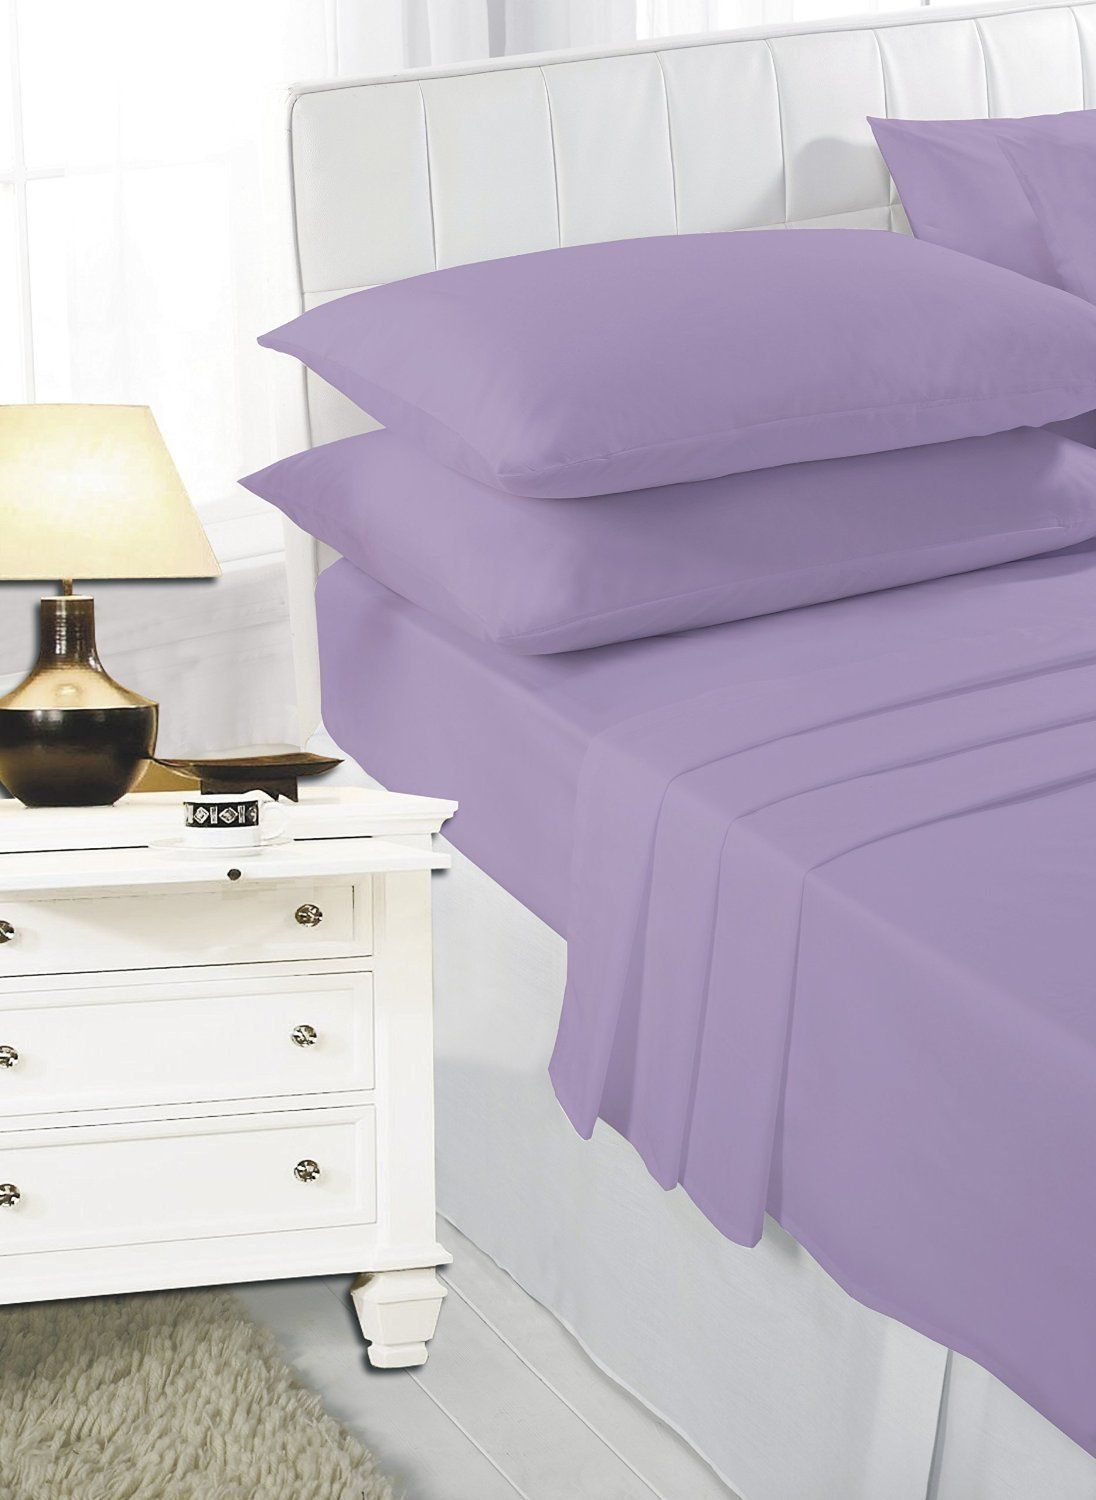 EASY CARE Non Iron Plain Bed Sheets Set (Flat Bed Sheet + Fitted Bed Sheet